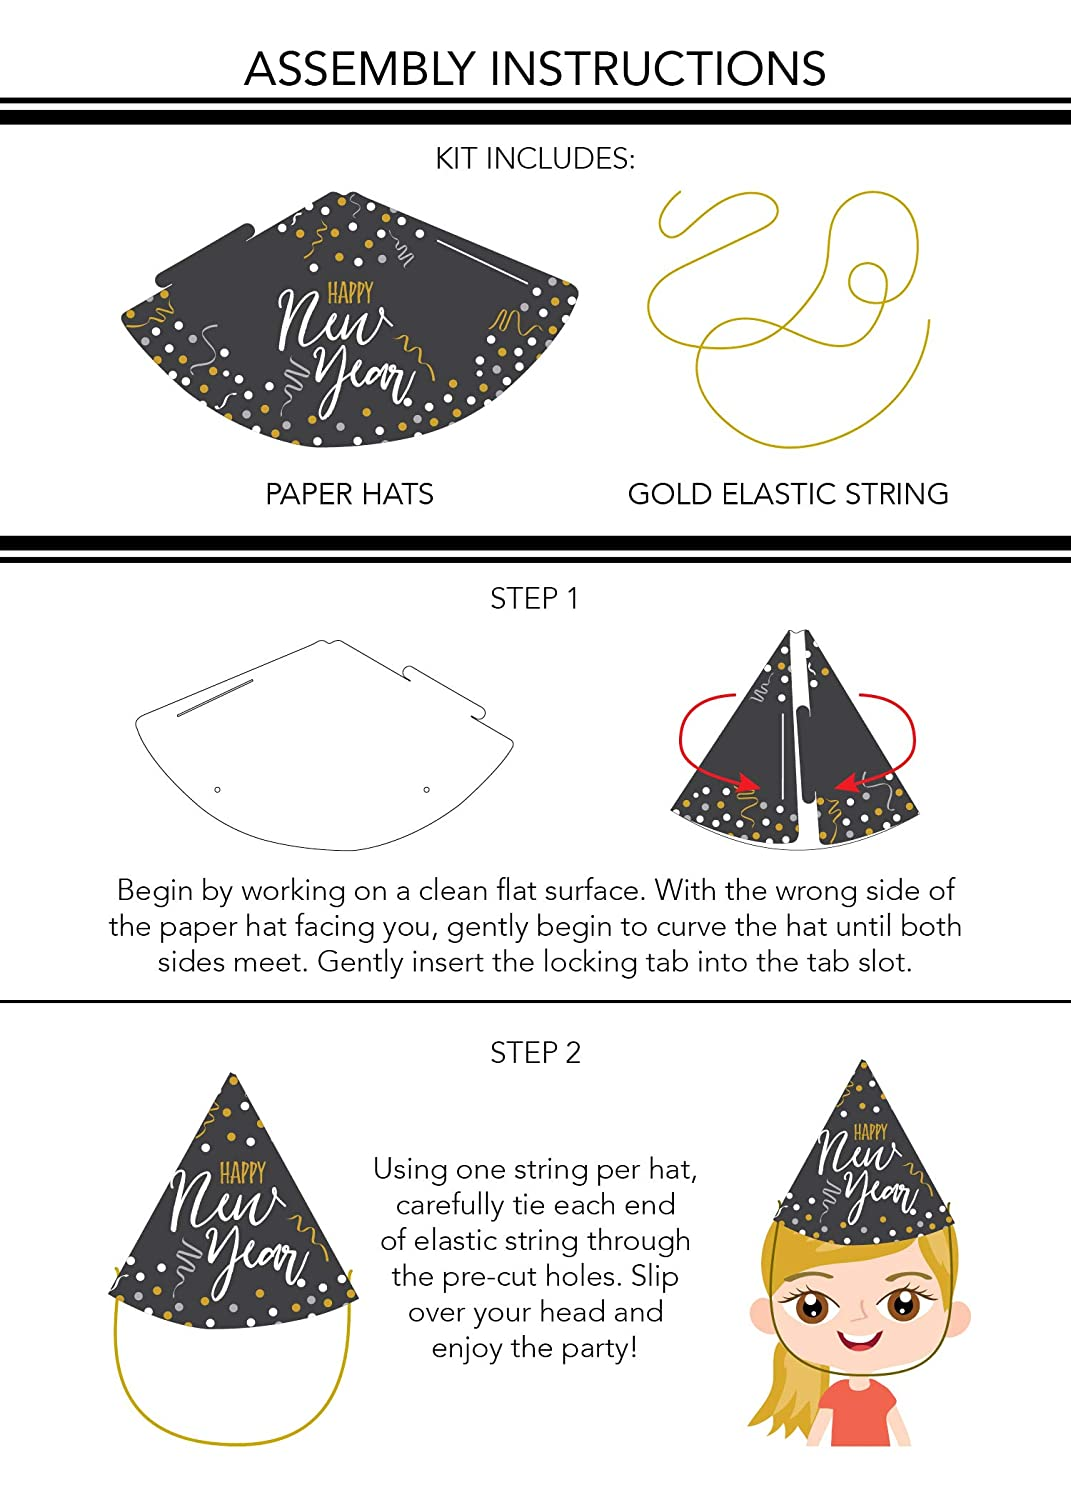 Easy Assembly 24-Pack Cone Shaped Paper Hats Holiday Supplies 4.6 x 7 Inches Juvale New Years Eve Party Hats Includes Gold Elastic String For Kids and Adults Black with Confetti Design